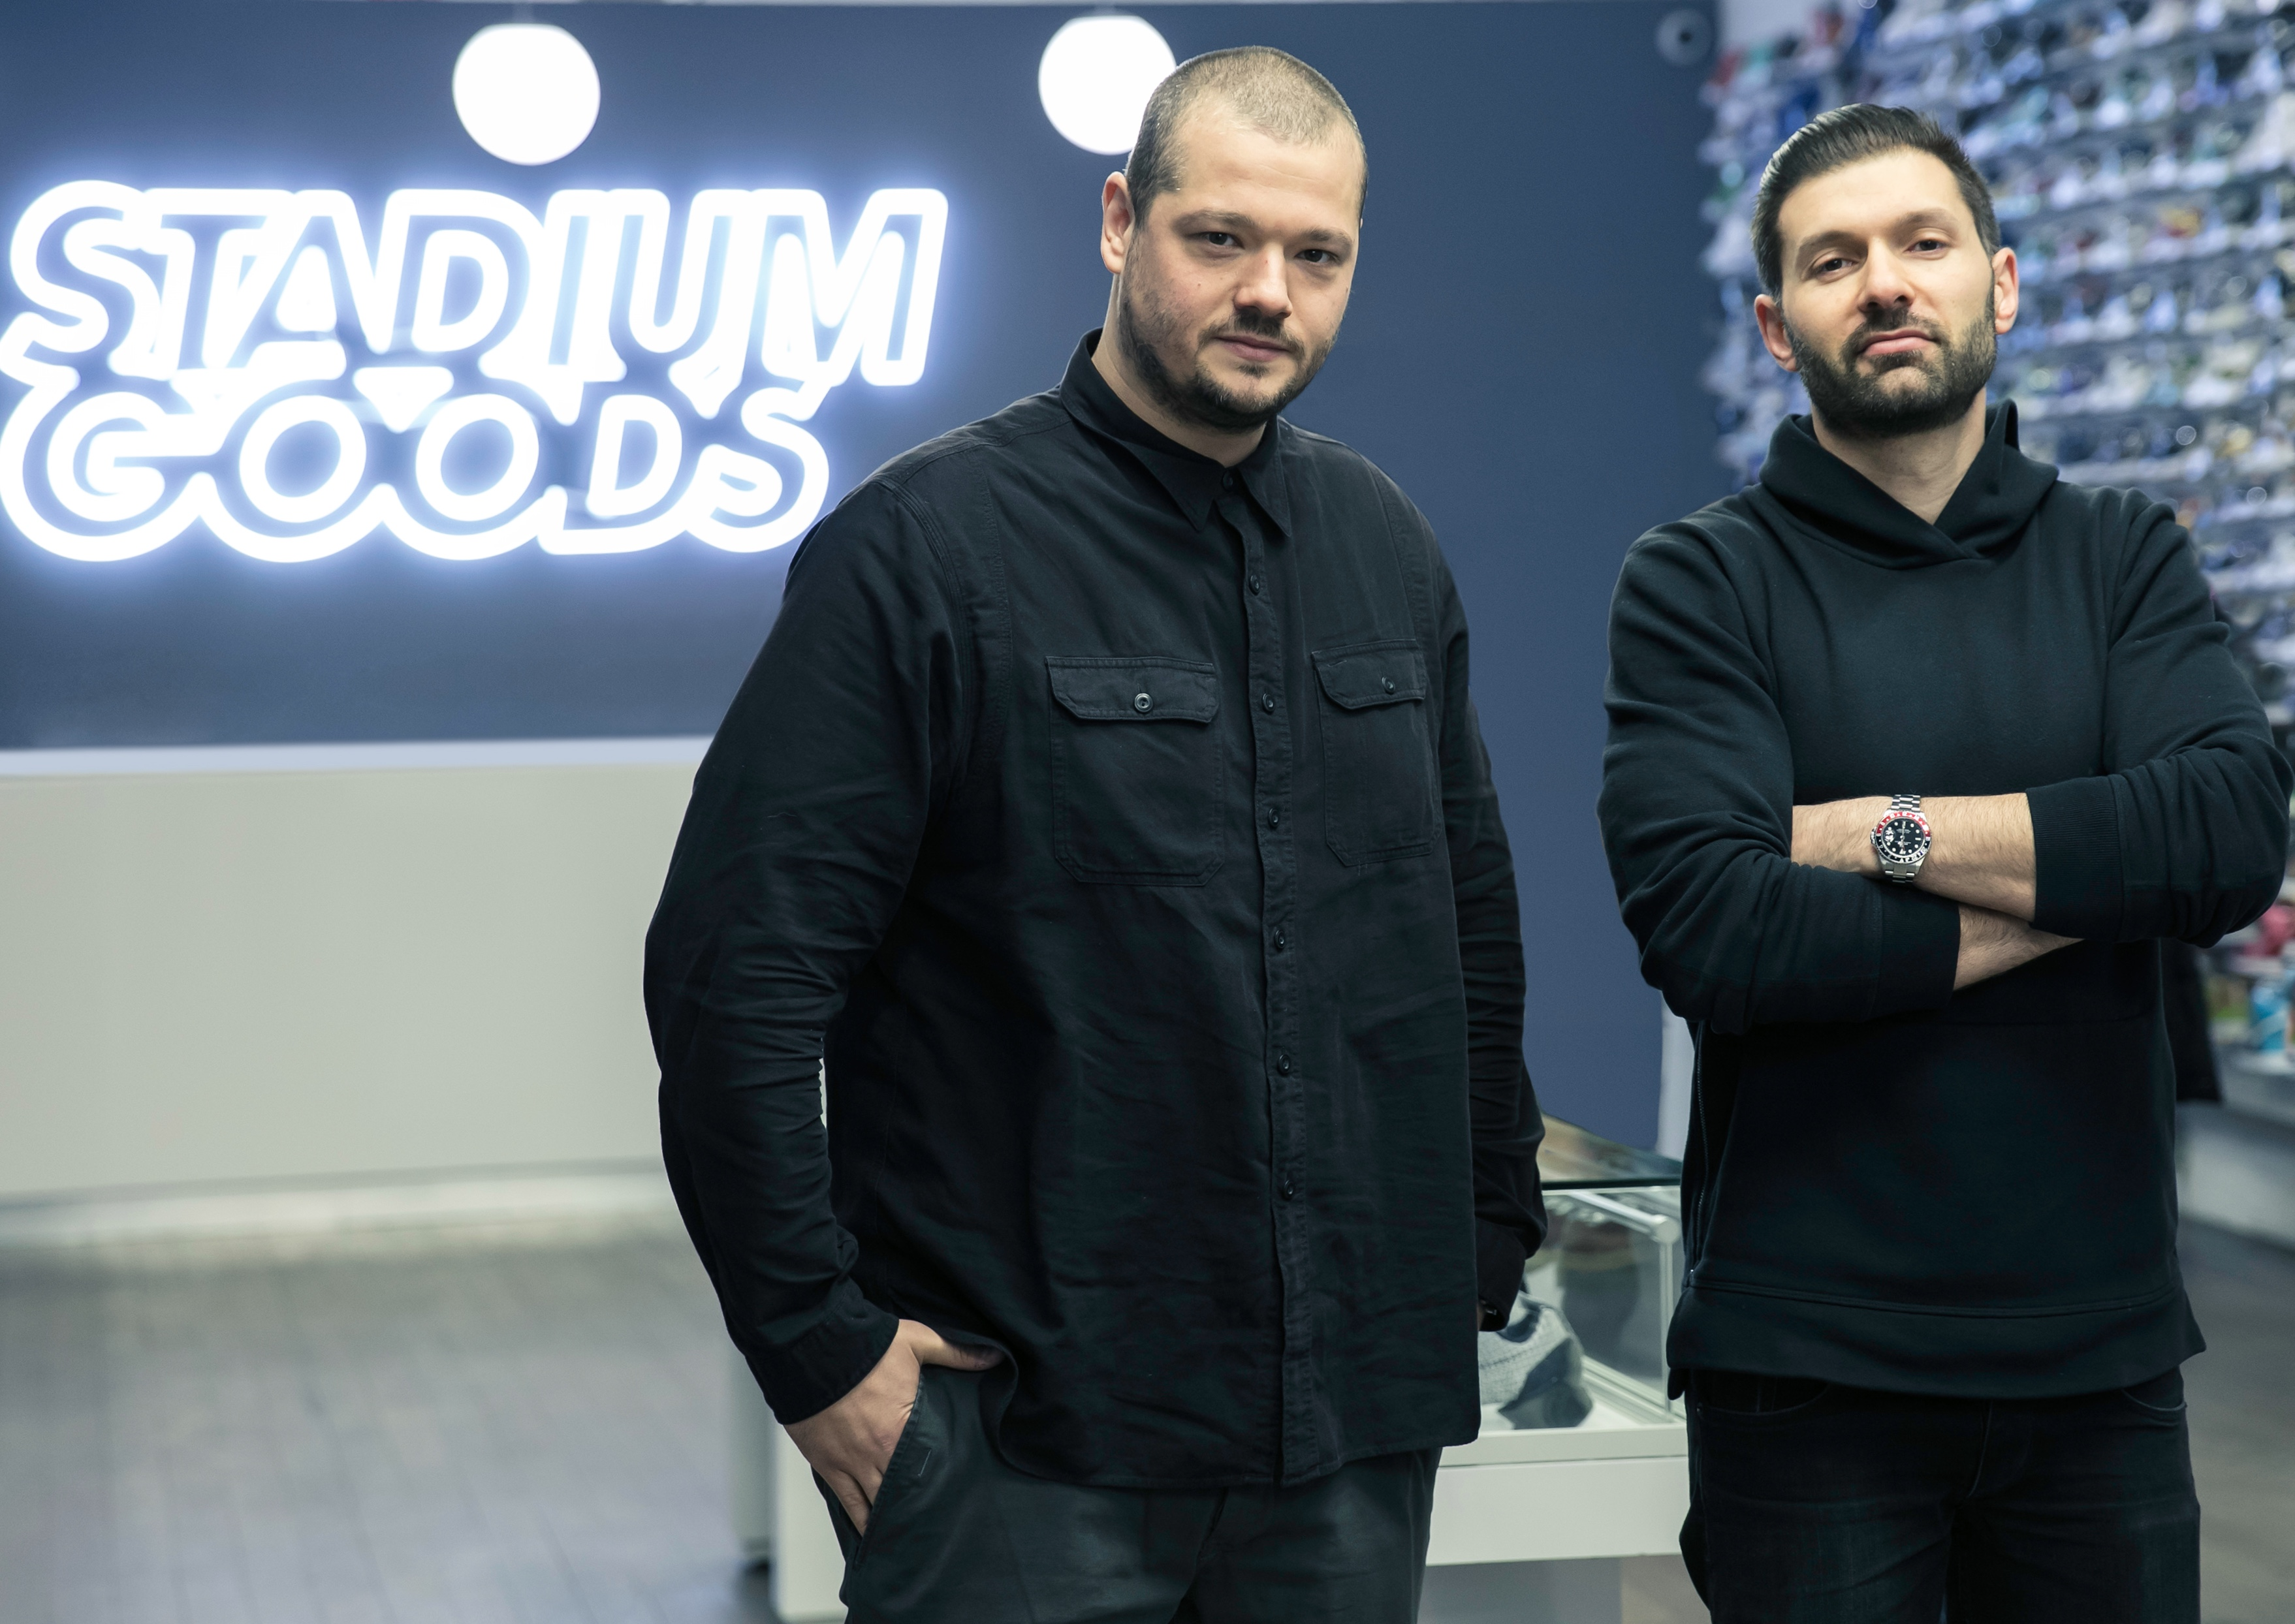 16ebb3643e0 Farfetch bets on sneakers with  250M Stadium Goods acquisition ...